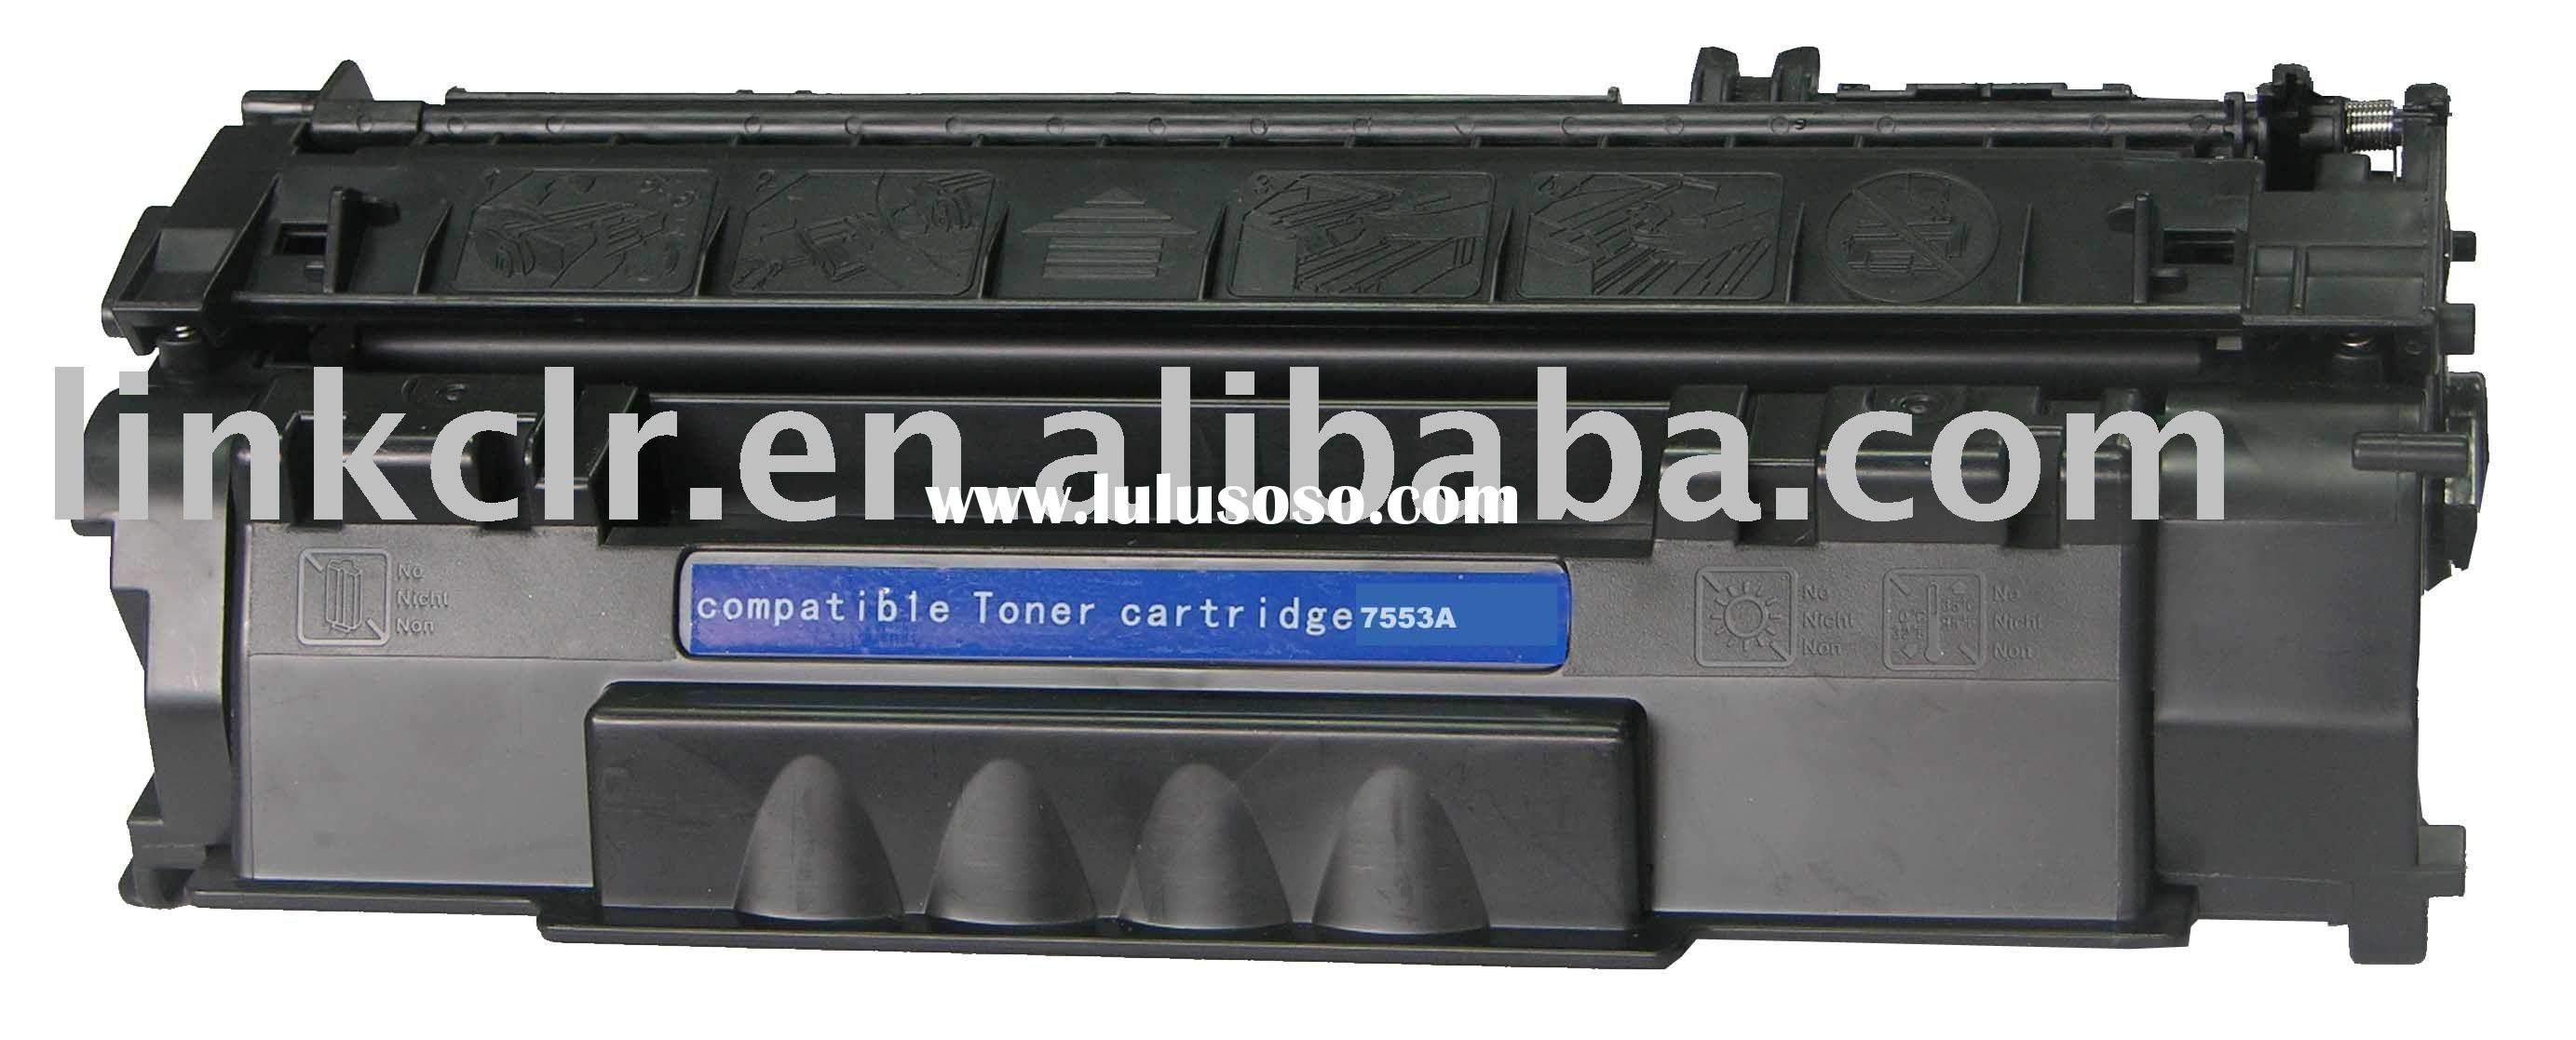 laser toner cartridges for HP C7553A / 53A/ 7115A /15A .trusted supplier of toner cartridges and ink